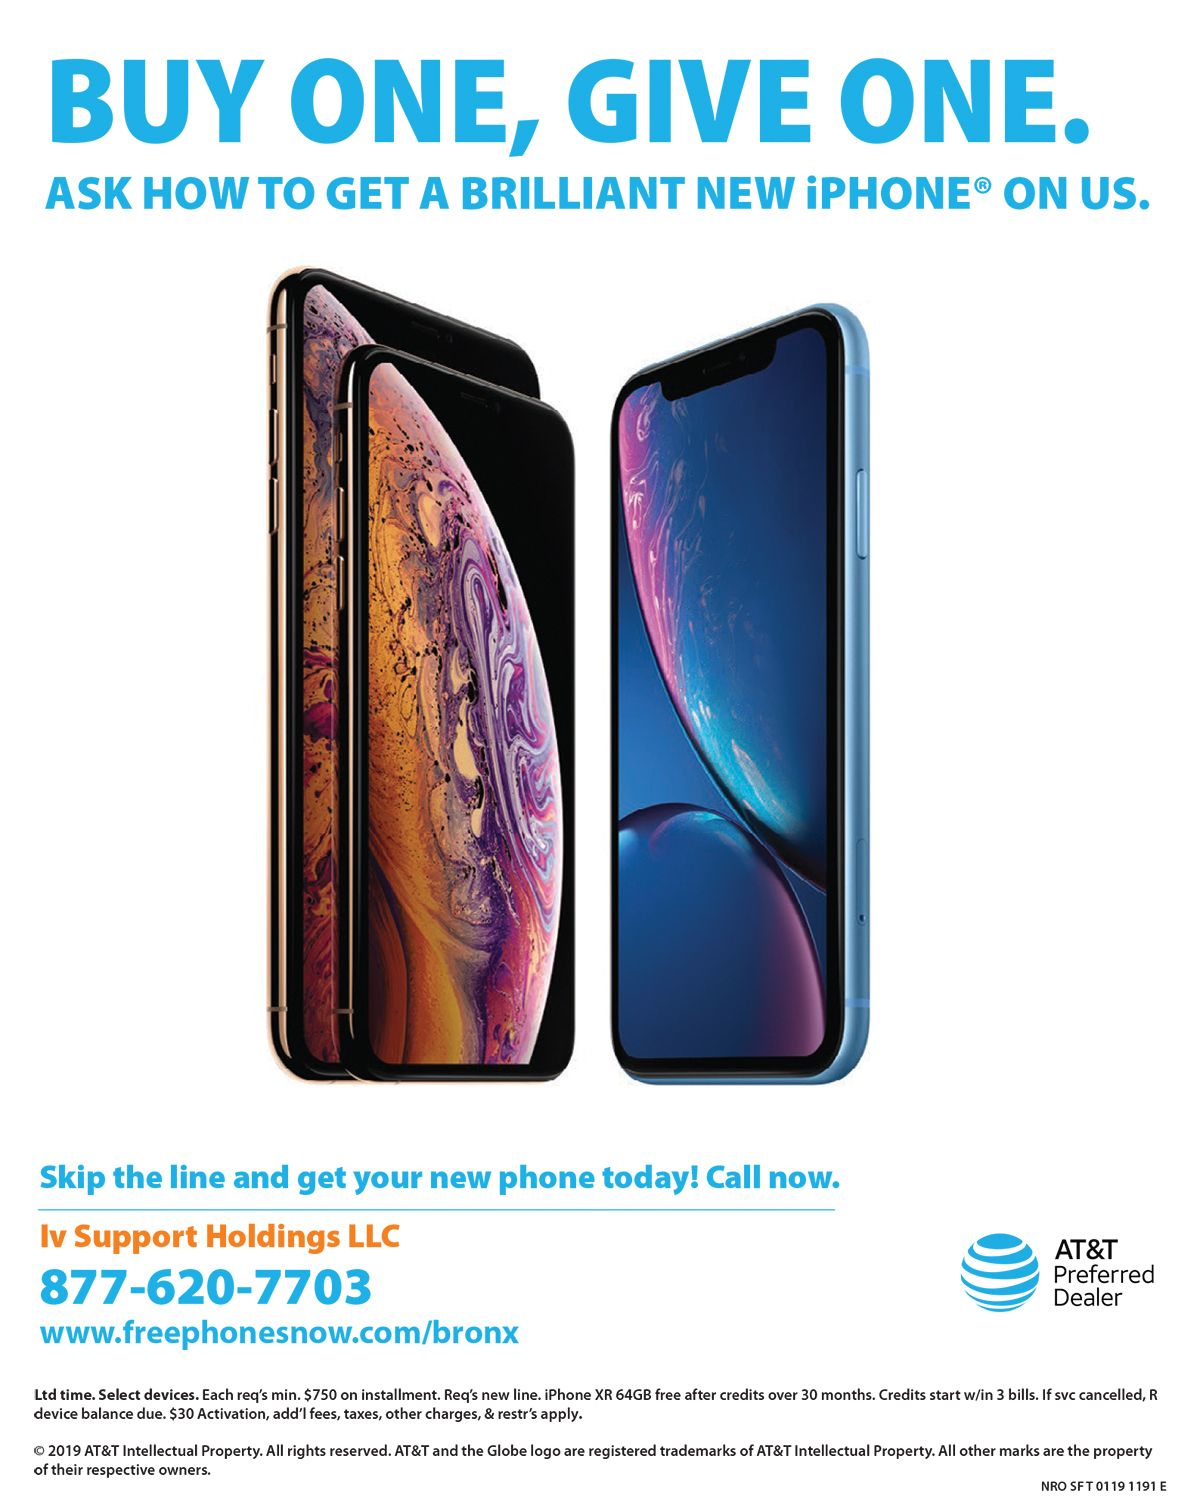 Buy One Give One Iphone Iphone Attwireless First Iphone Healthcare News News Health